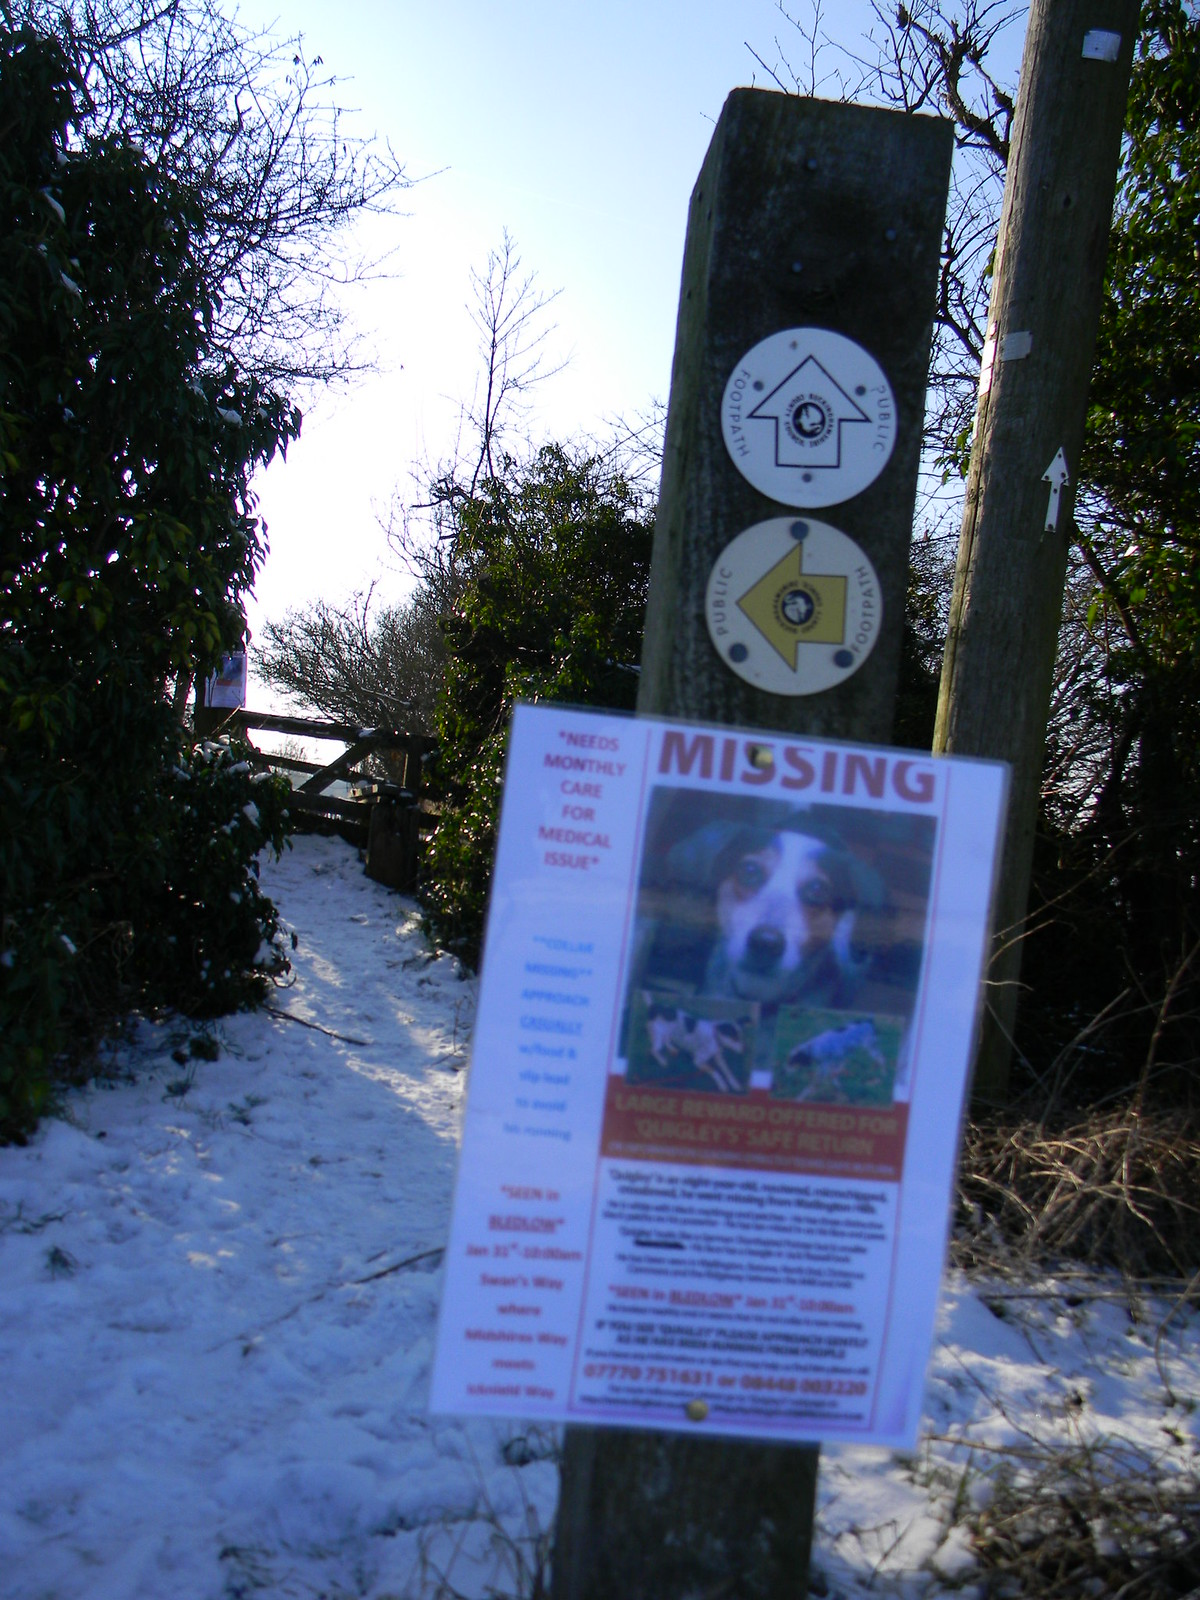 Missing... ....answers to the name Quigley. (Posters everywhere.) Saunderton to Bledlow